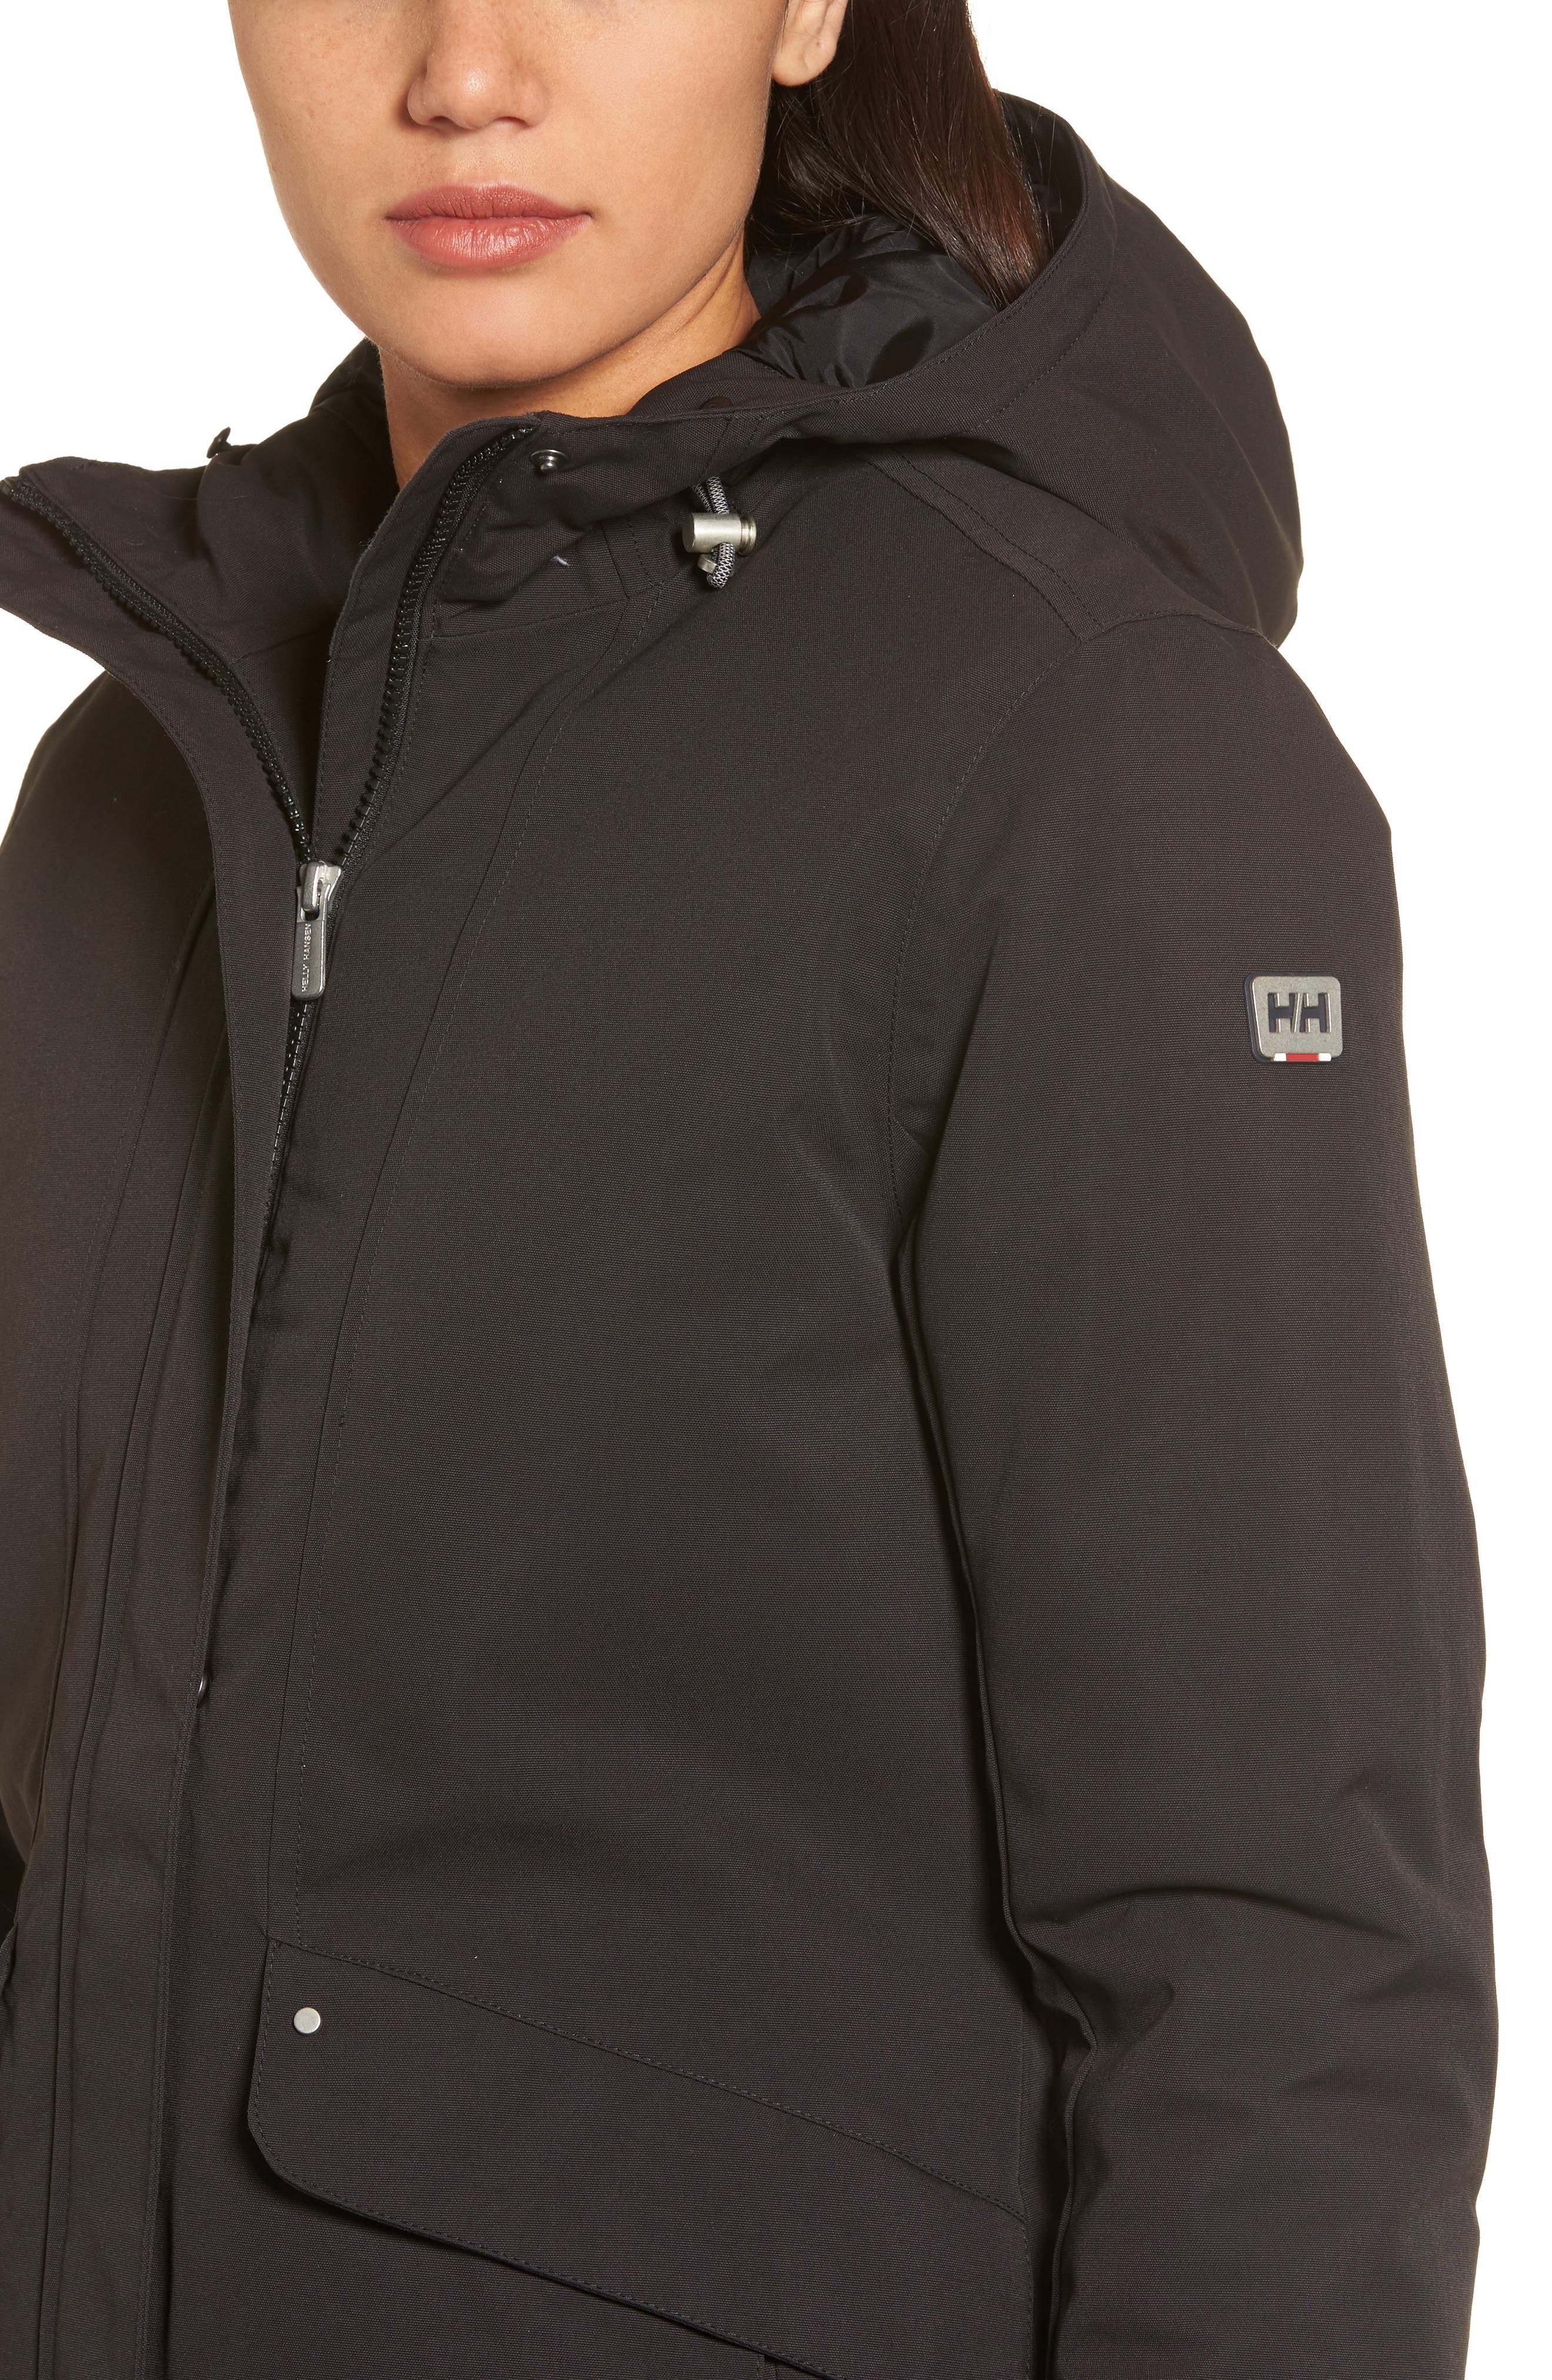 Alternate Image 4  - Helly Hansen 'Eira' Waterproof Jacket with Faux Fur Hood